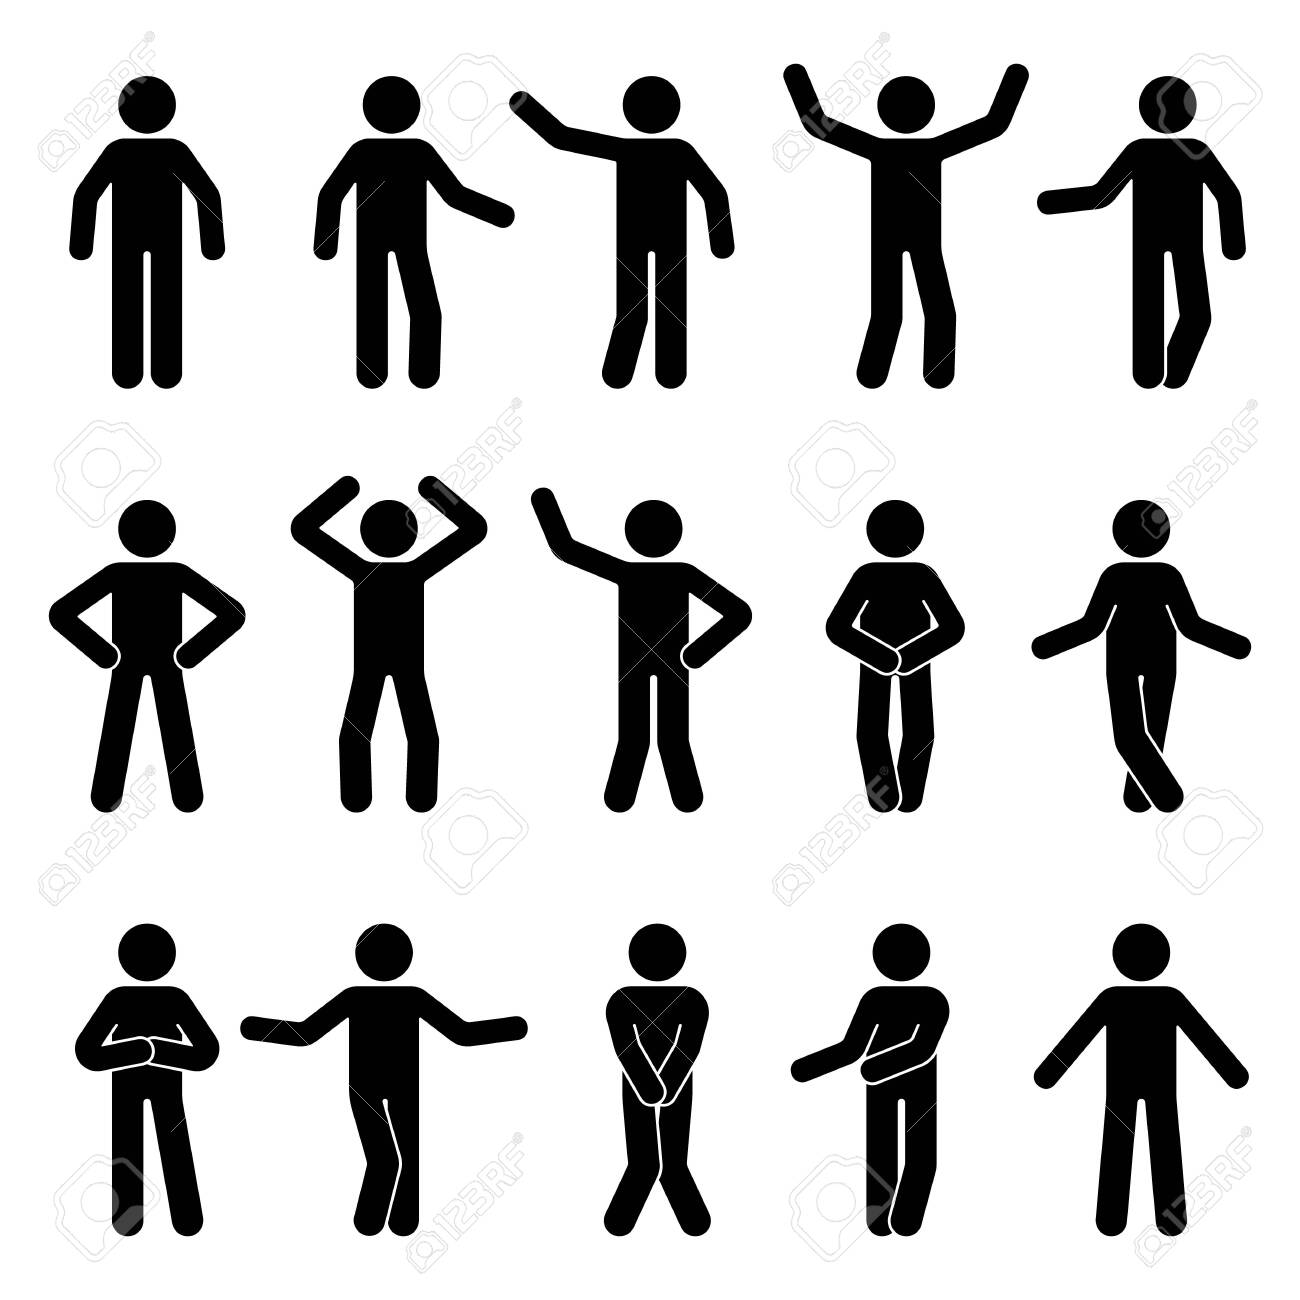 Stick figure man standing front view different poses vector icon pictogram set. Black and white cut out people human silhouette on white background - 134332747